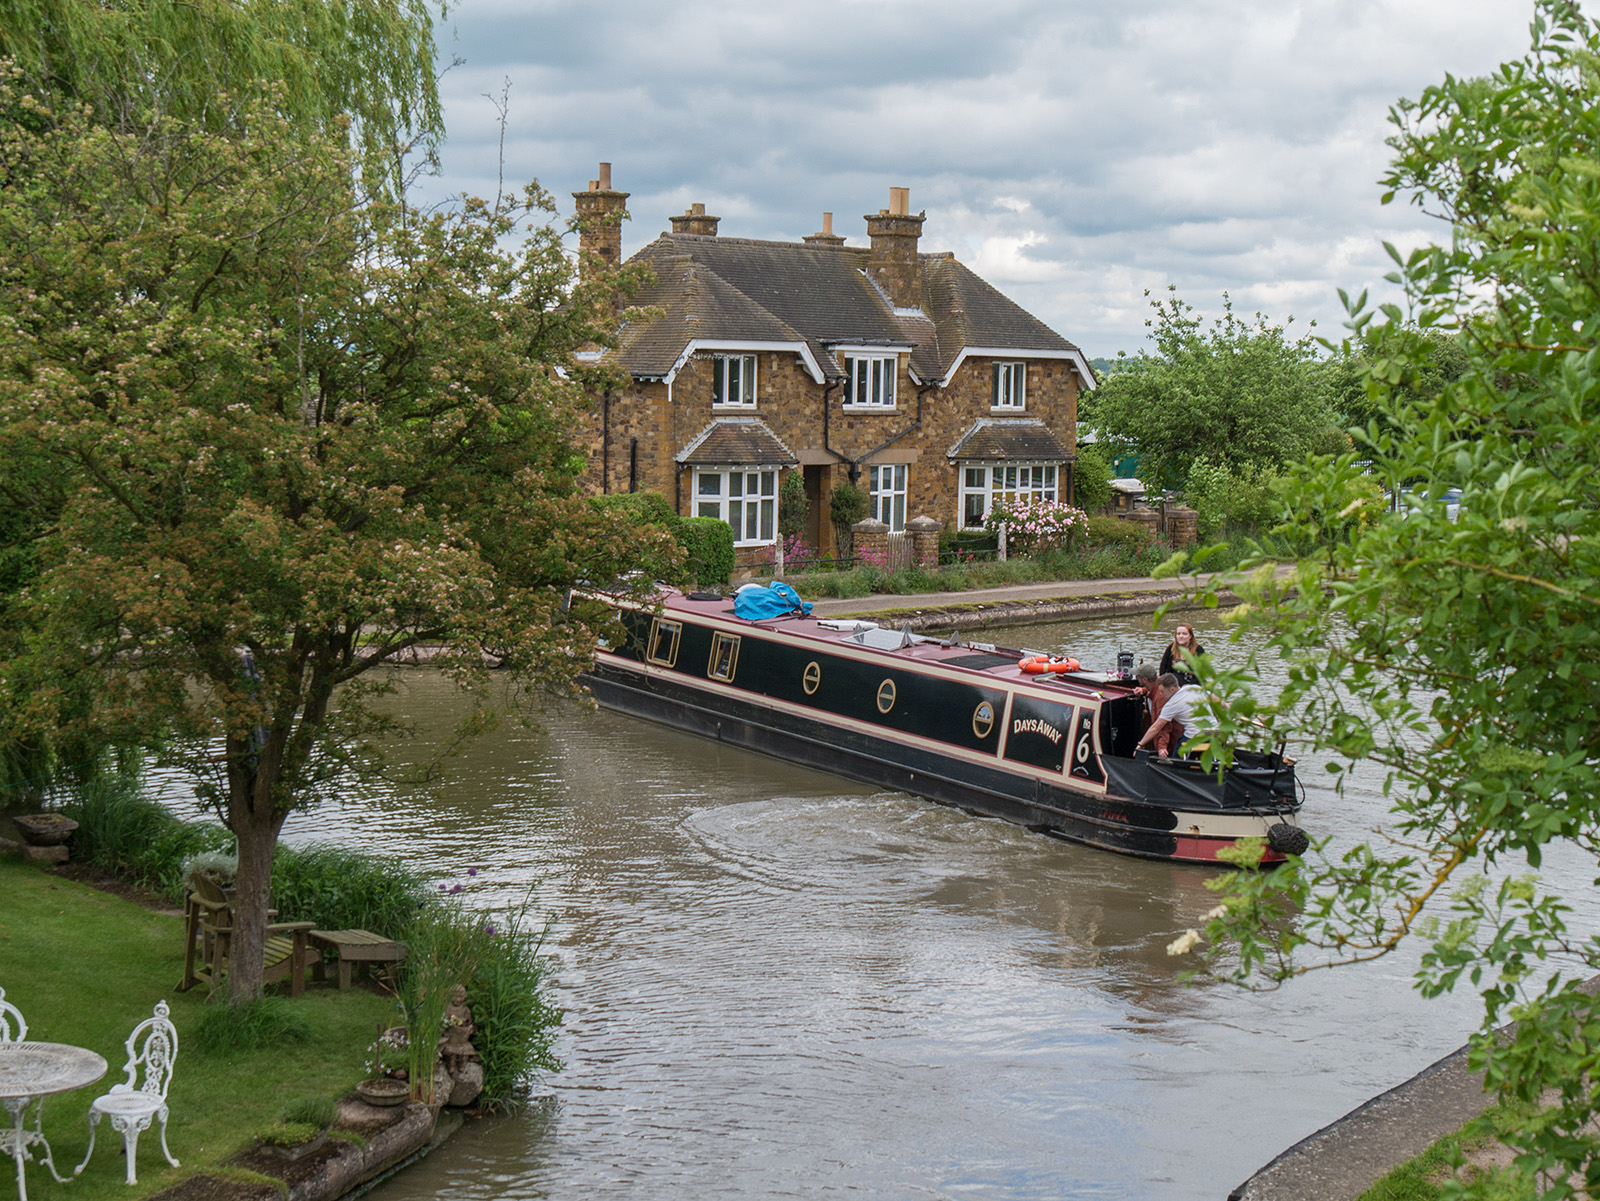 A boat making the turn into the Leicester canal